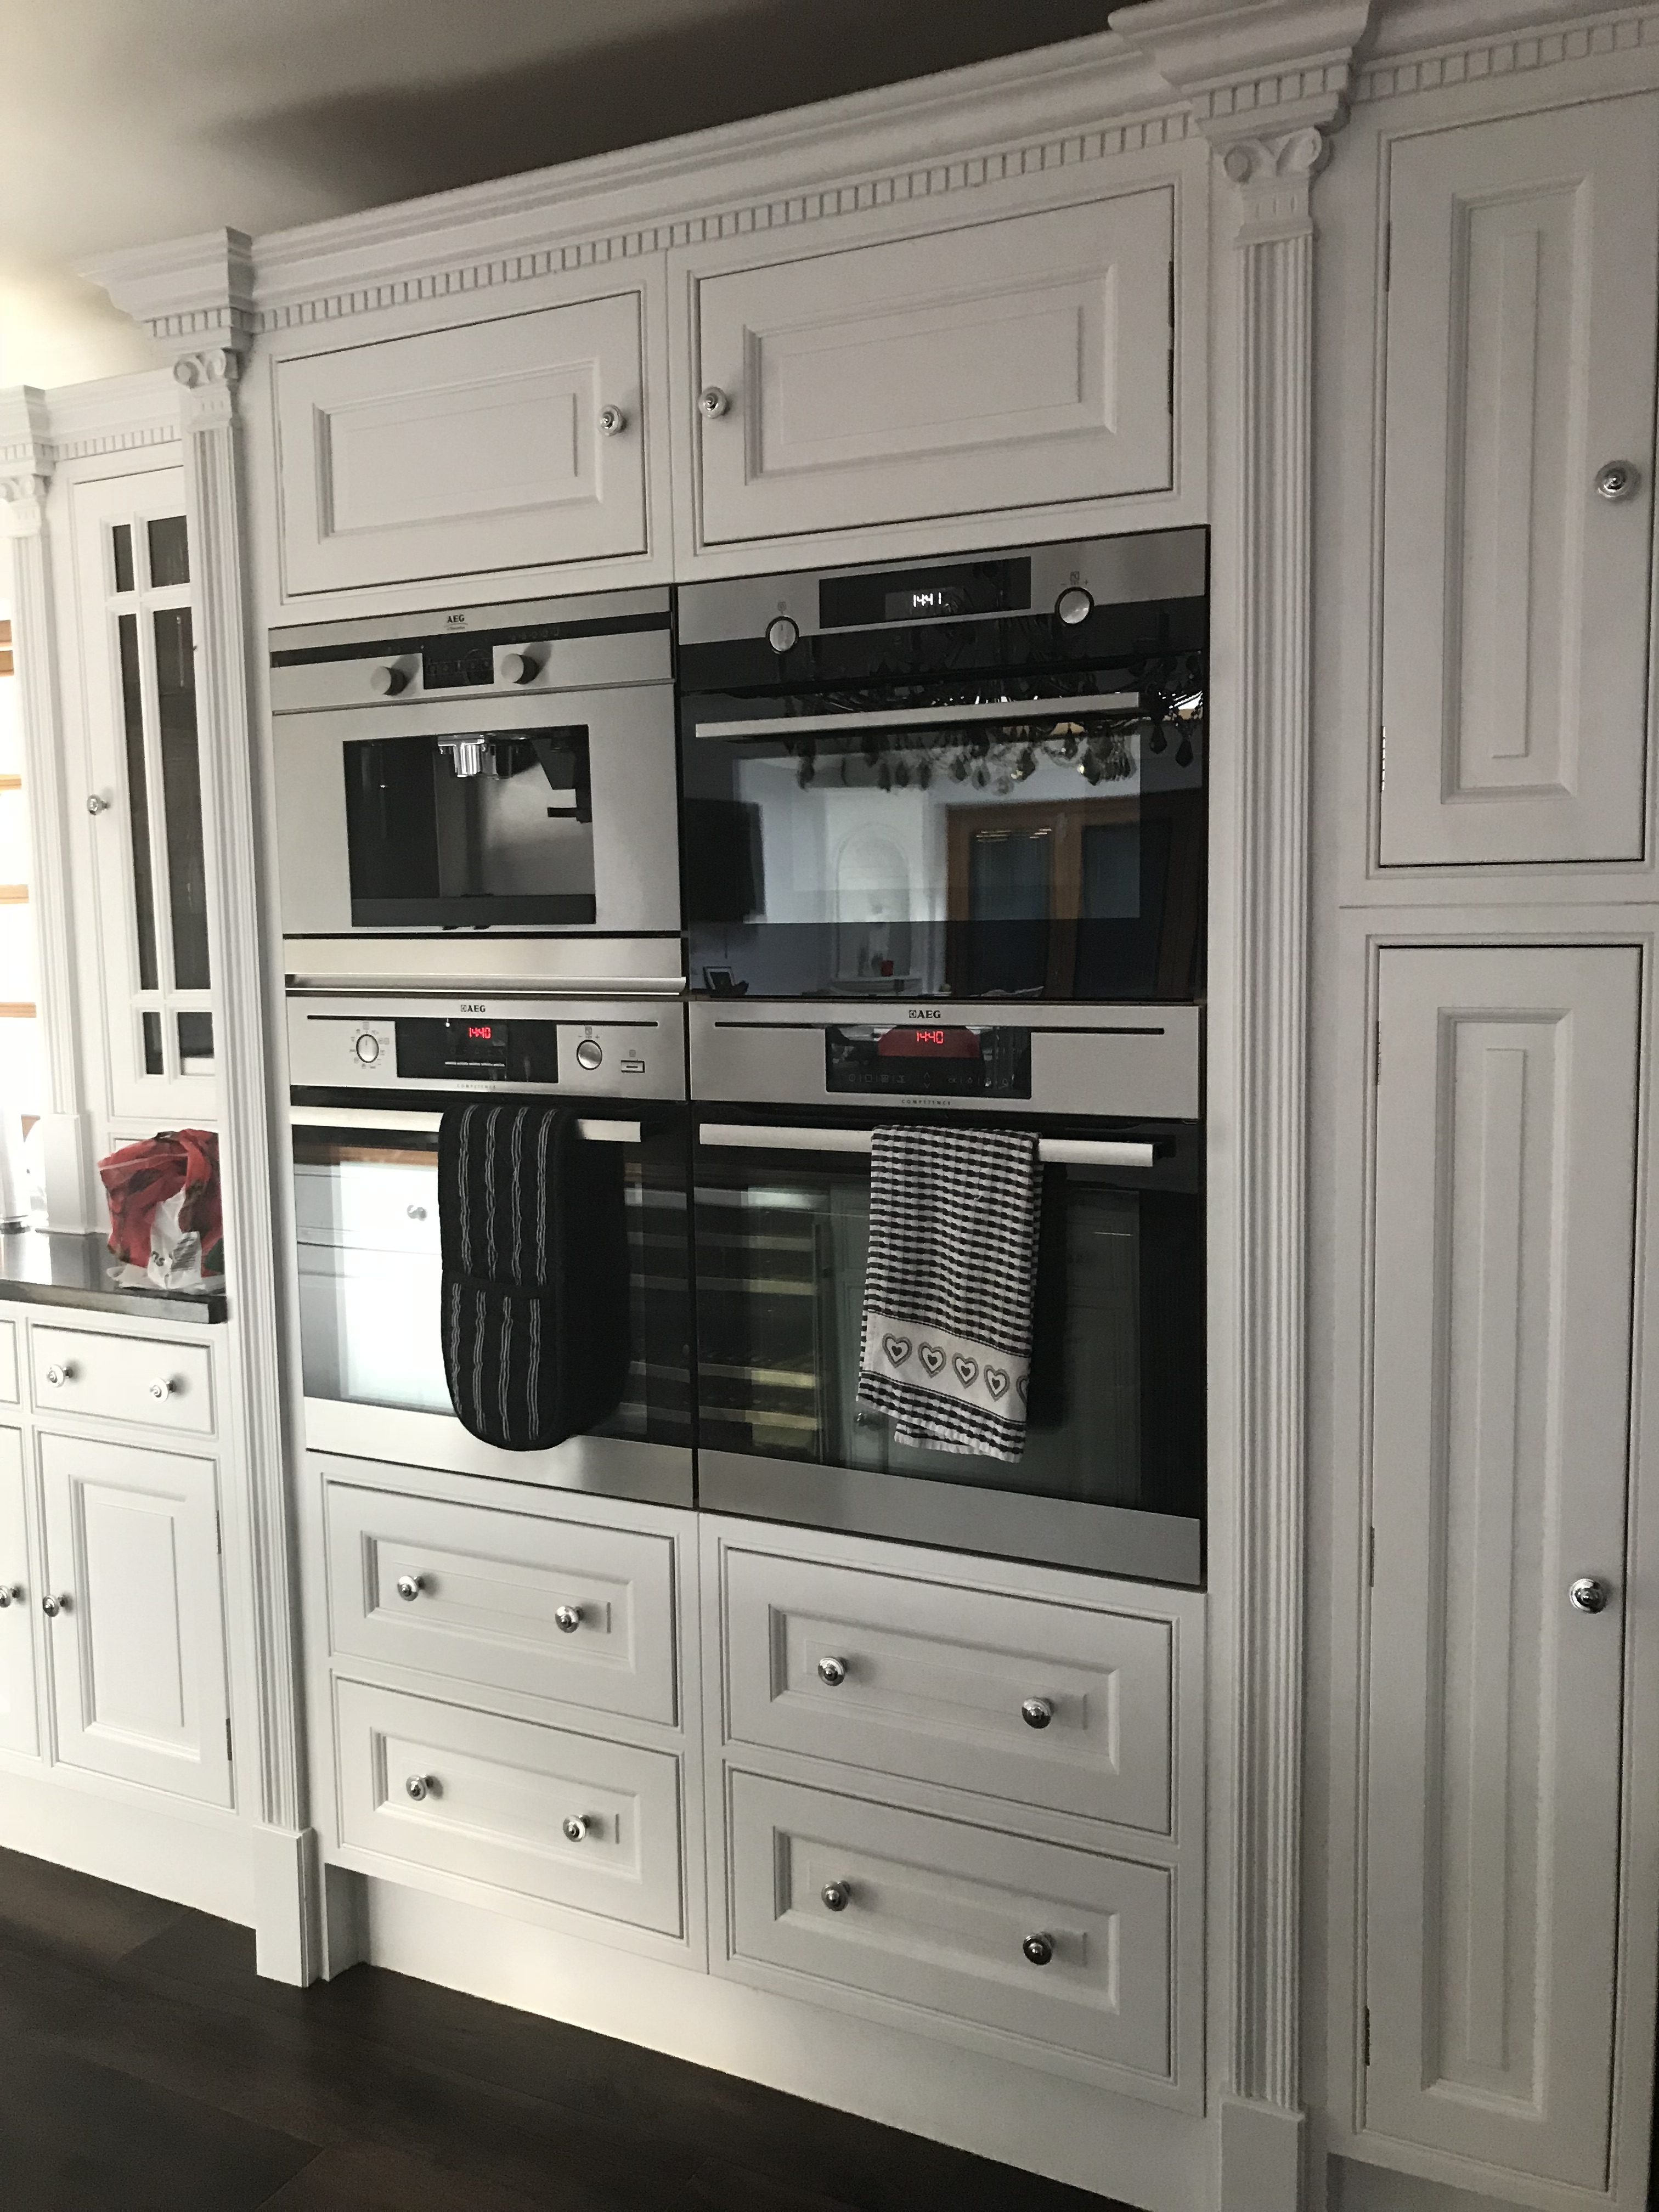 Classic English cabinetry